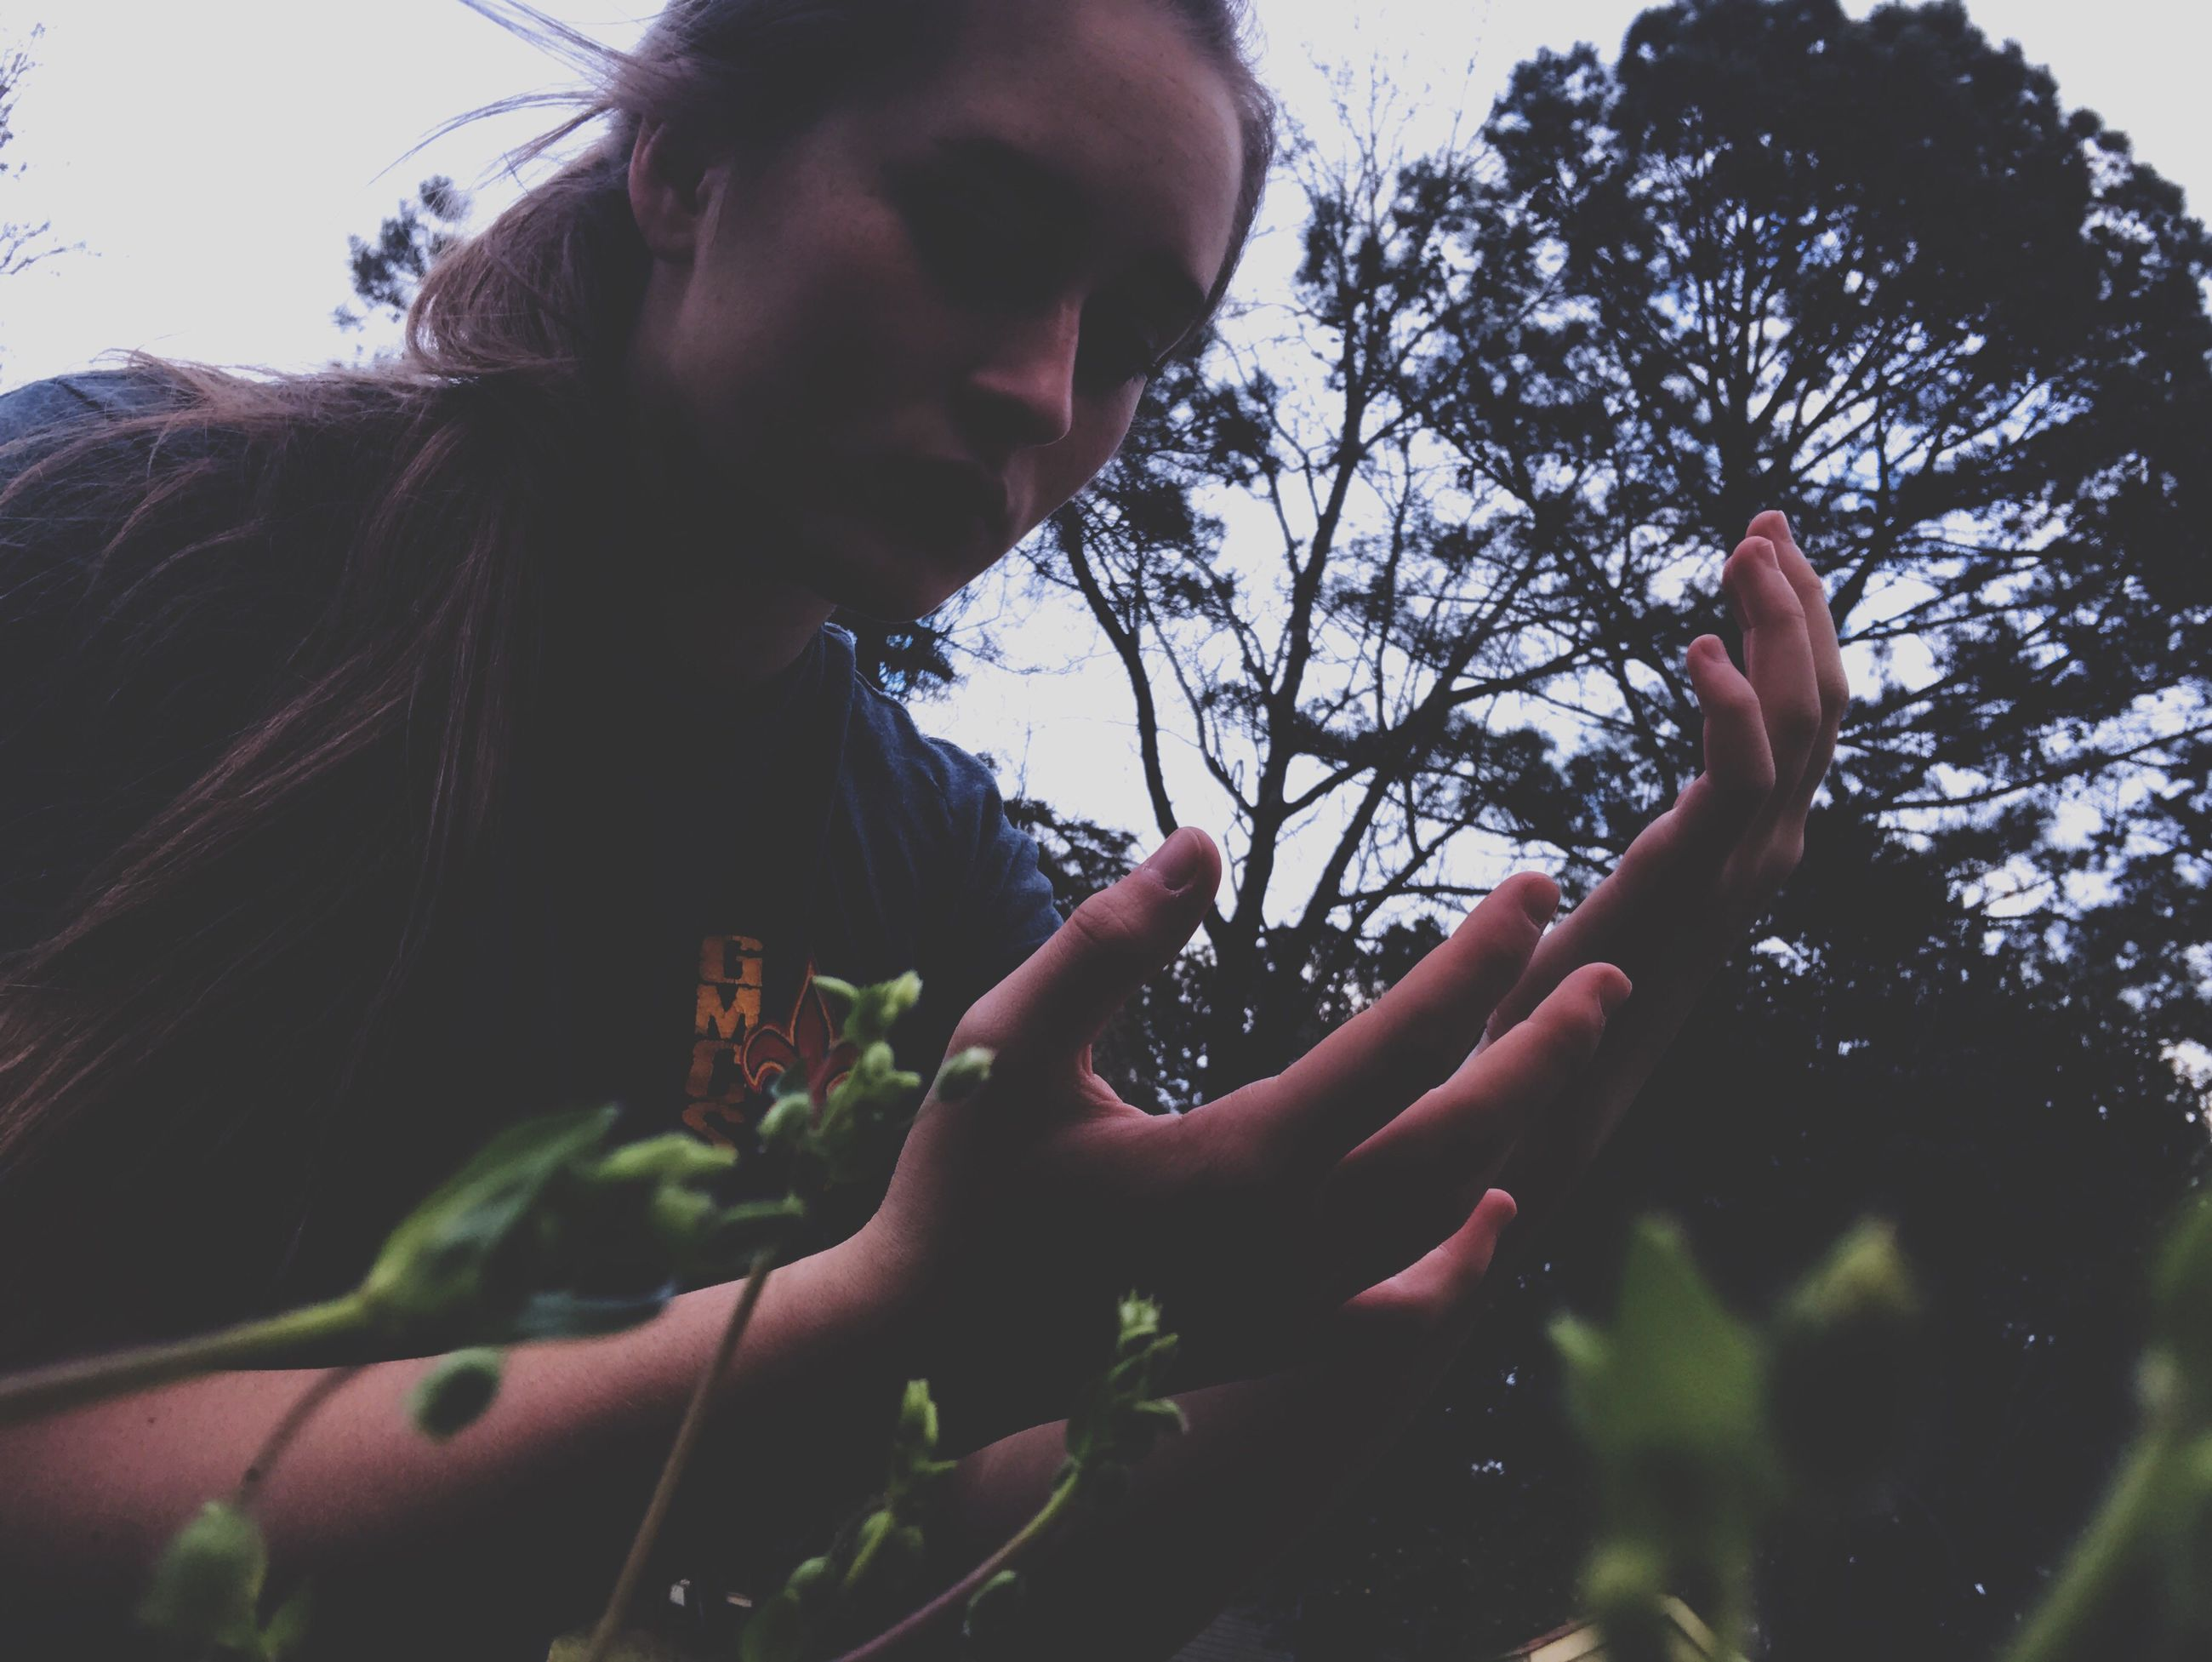 tree, real people, low angle view, one person, human hand, lifestyles, outdoors, growth, sky, day, nature, young adult, close-up